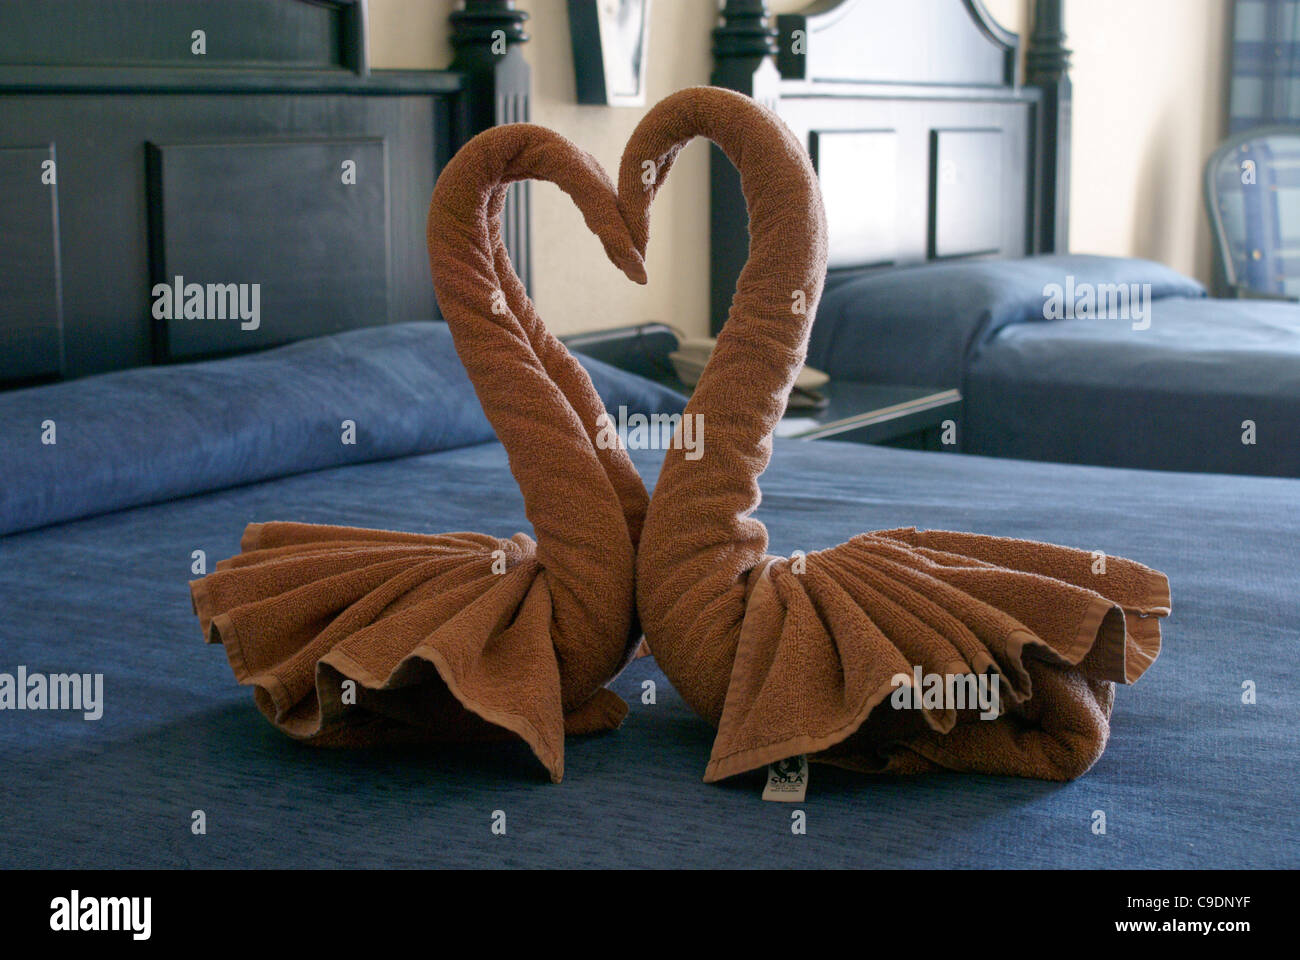 Kissing swans towel origami on the bed in a luxury resort hotel room, Mazatlan, Sinaloa, Mexico - Stock Image